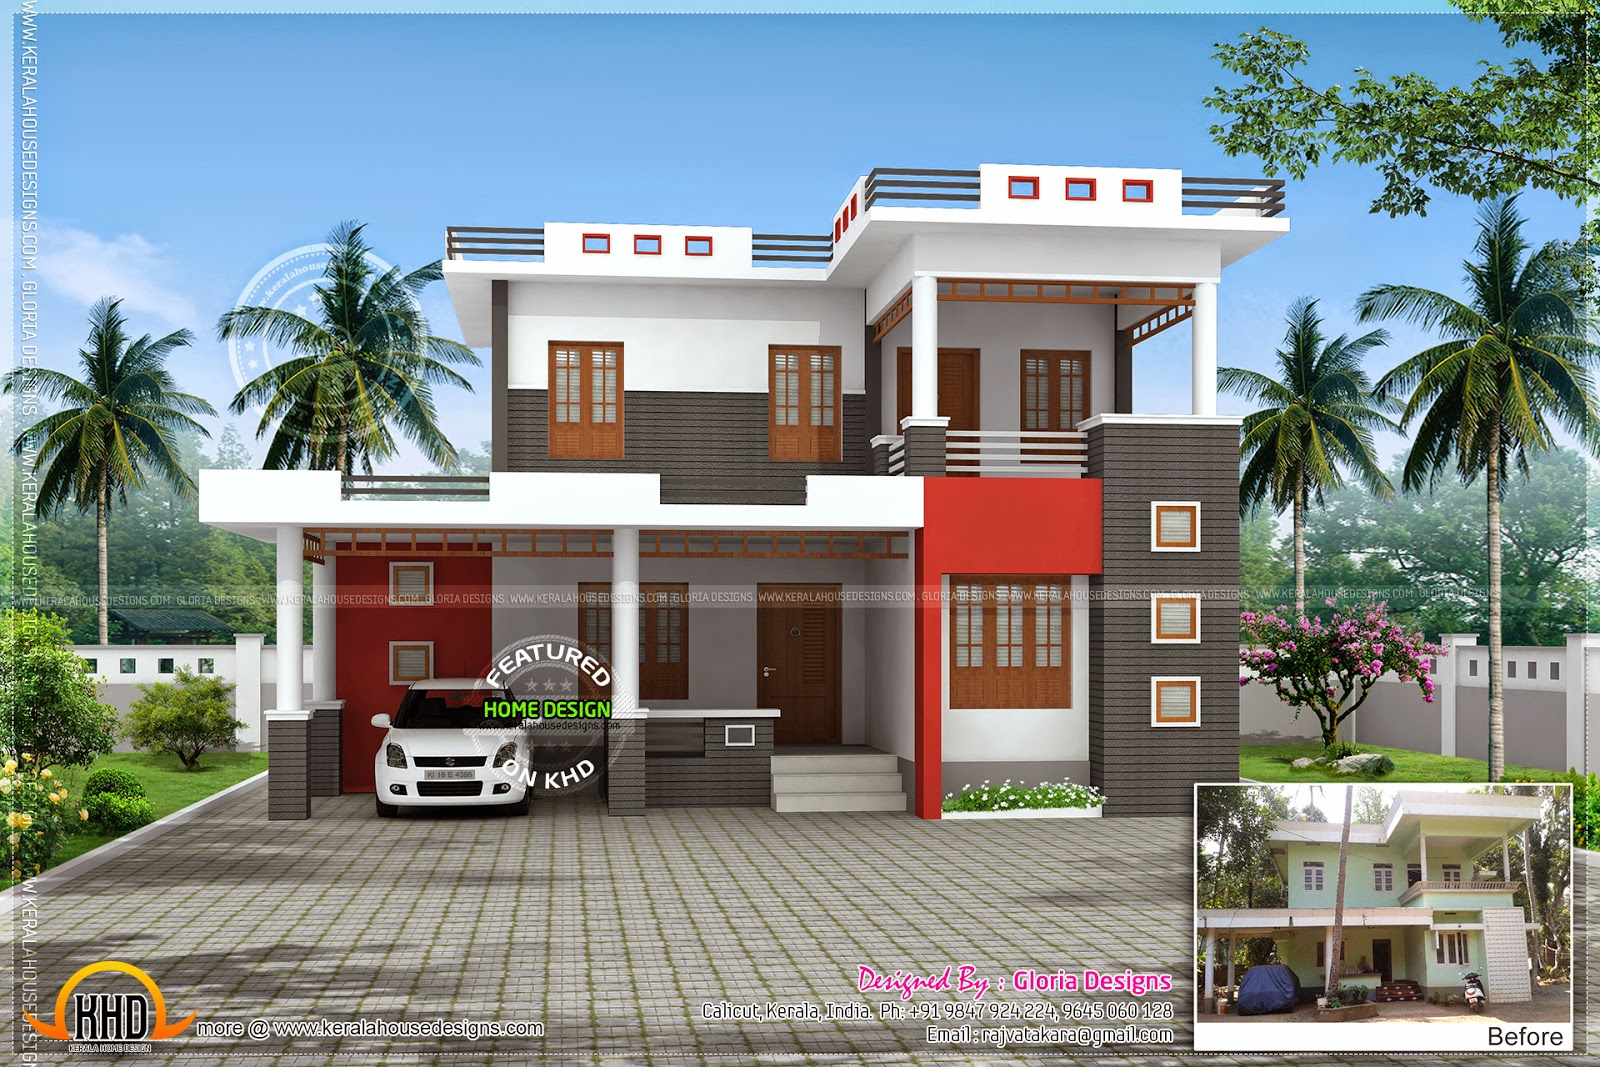 Renovation 3d model for an old house kerala home design for Indian house models for construction